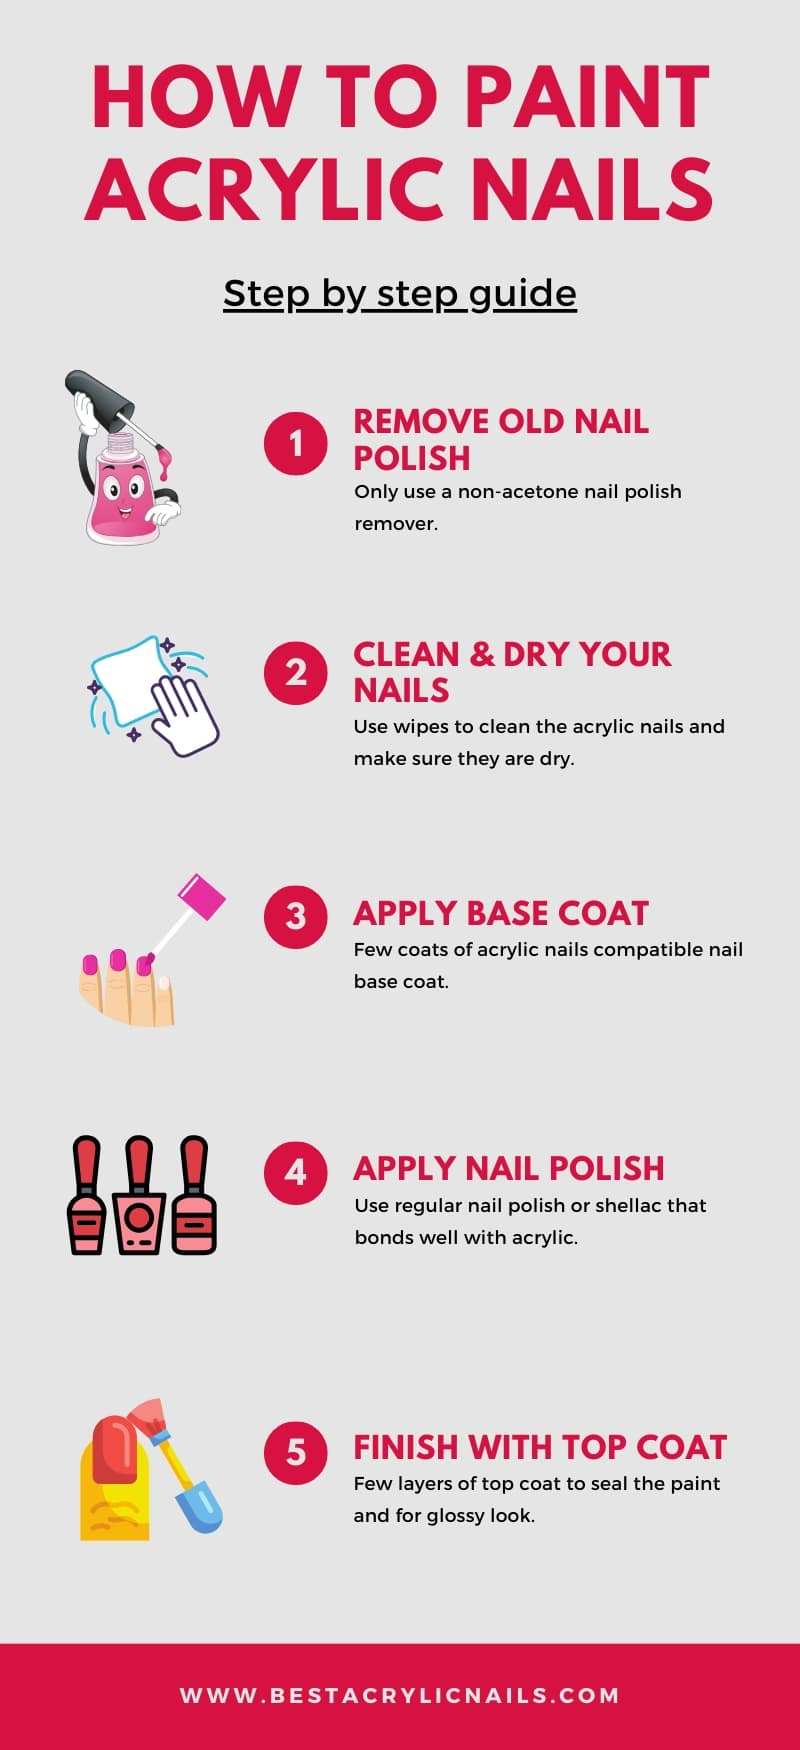 How to paint acrylic nails